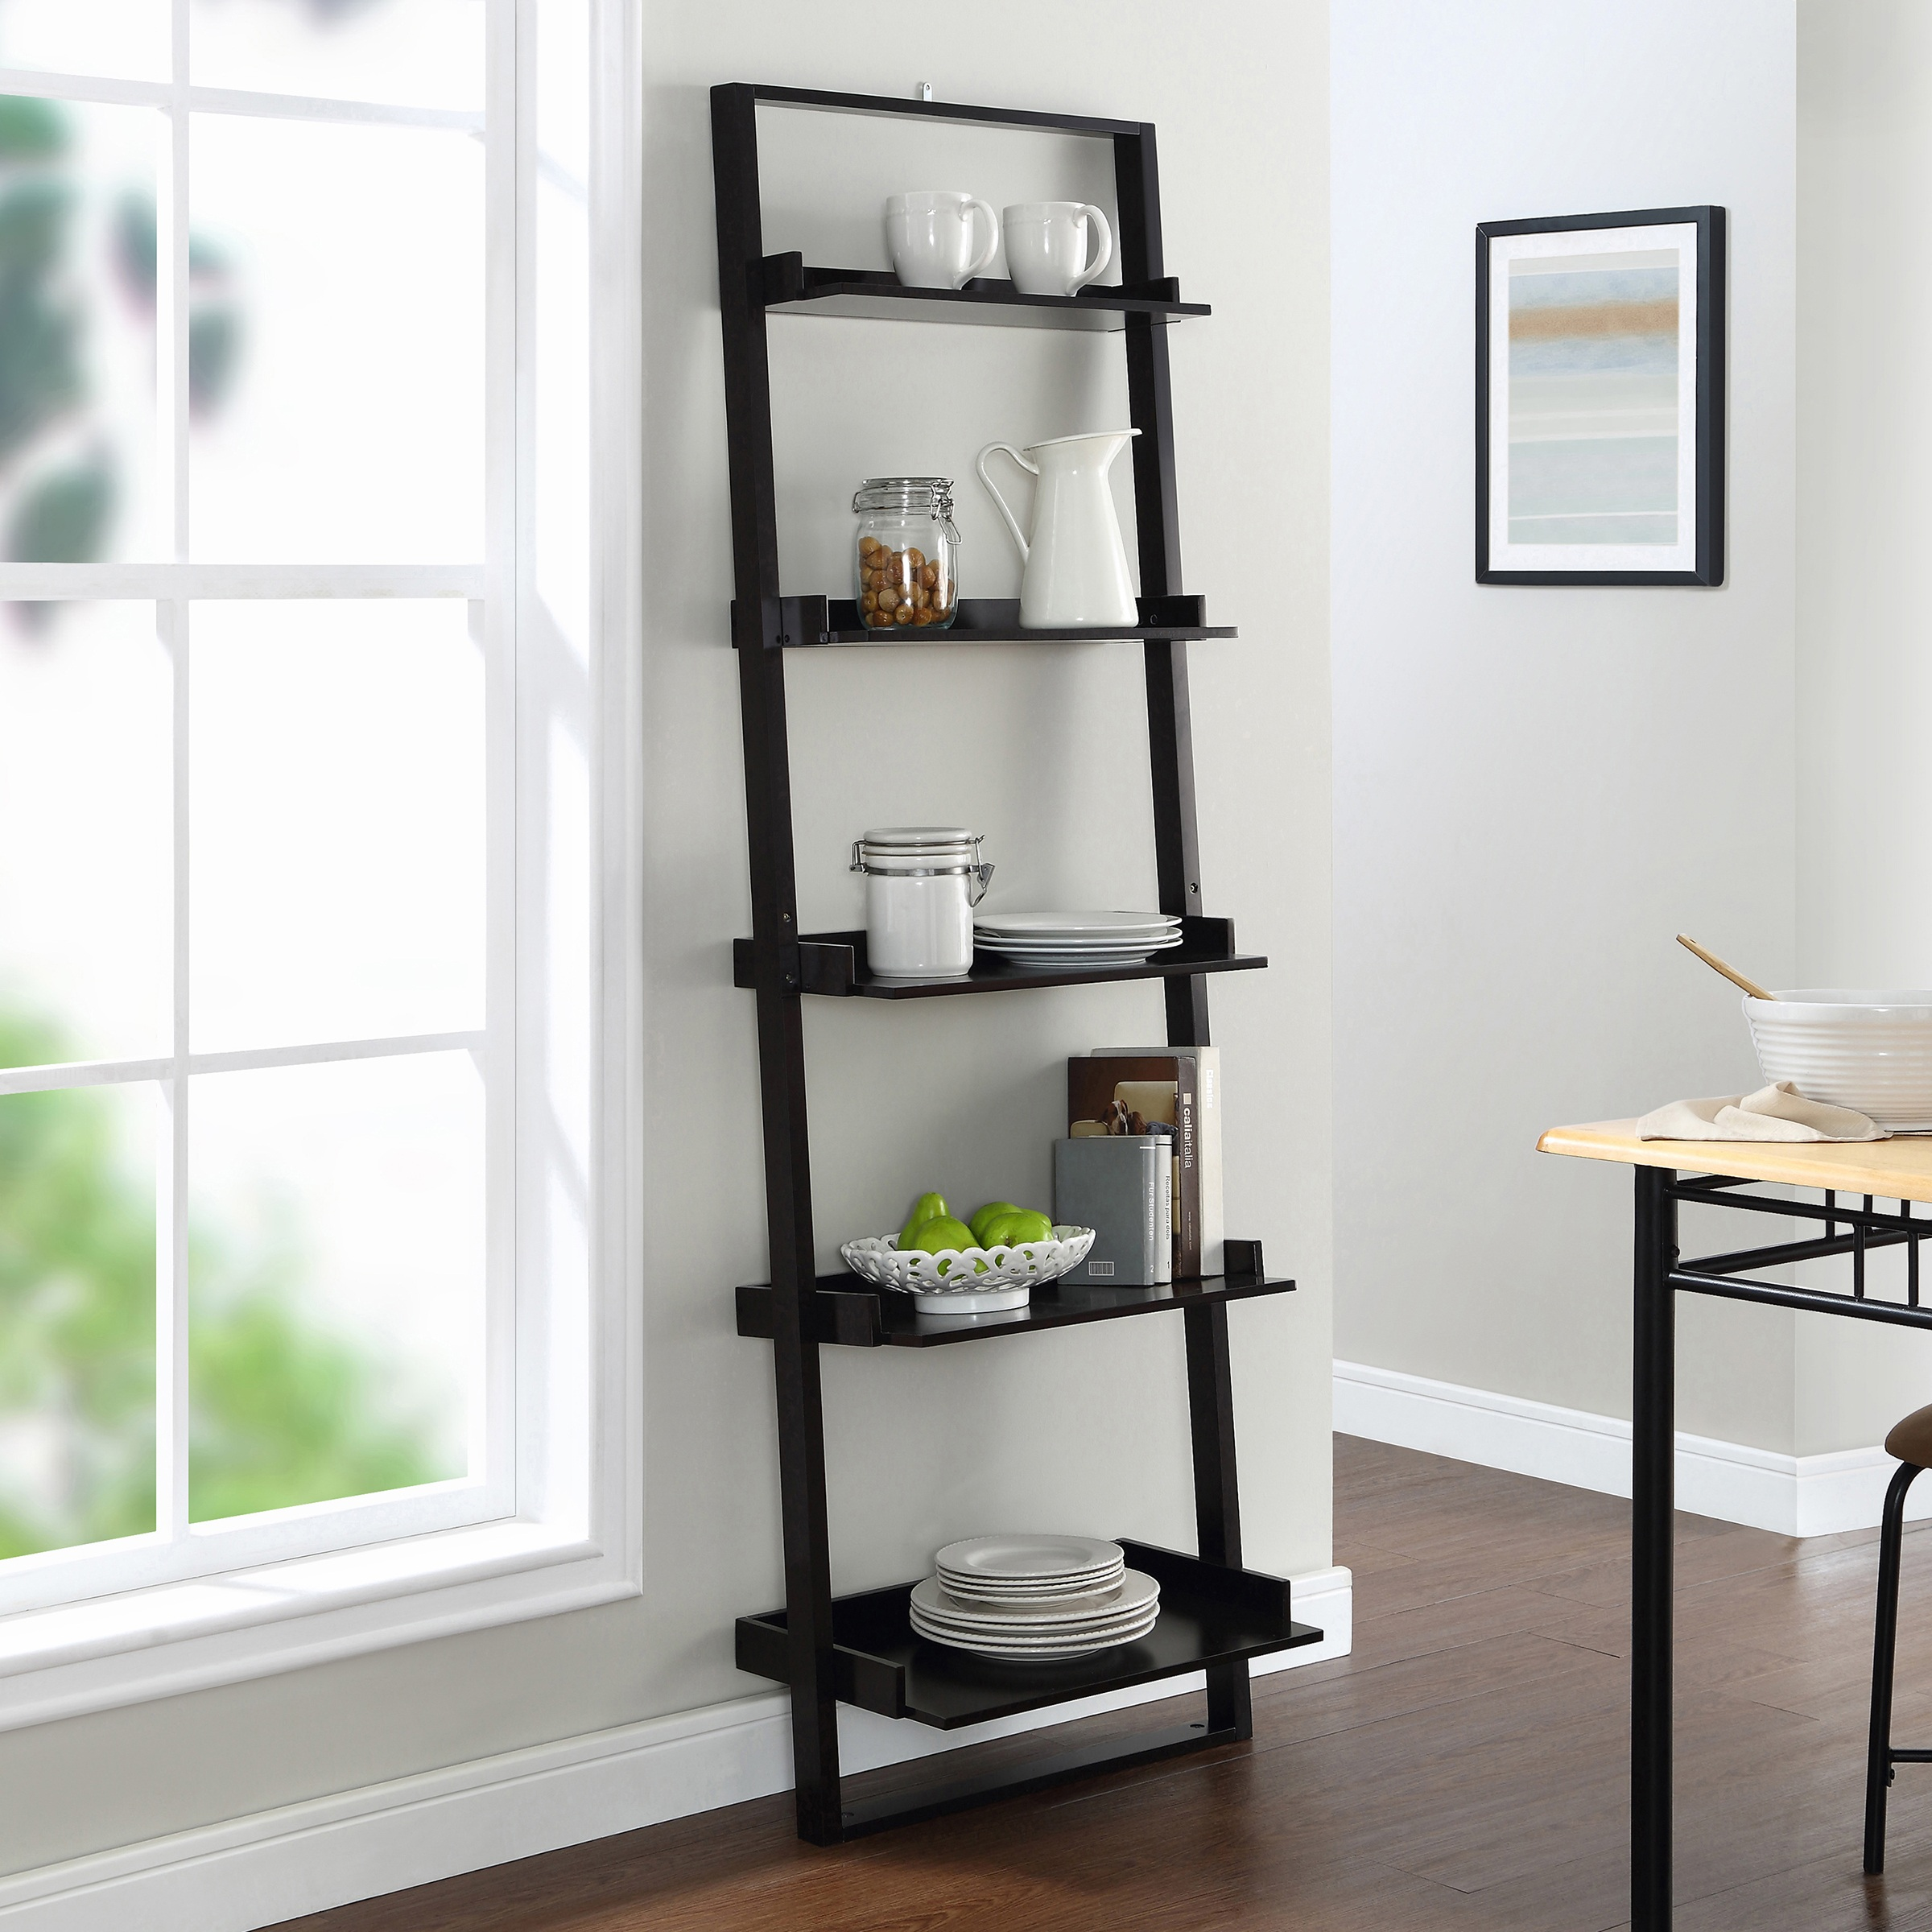 bookshelf larger bookcases pdf astounding view images slanted leaning diy bookcase l creativity ladder ikea